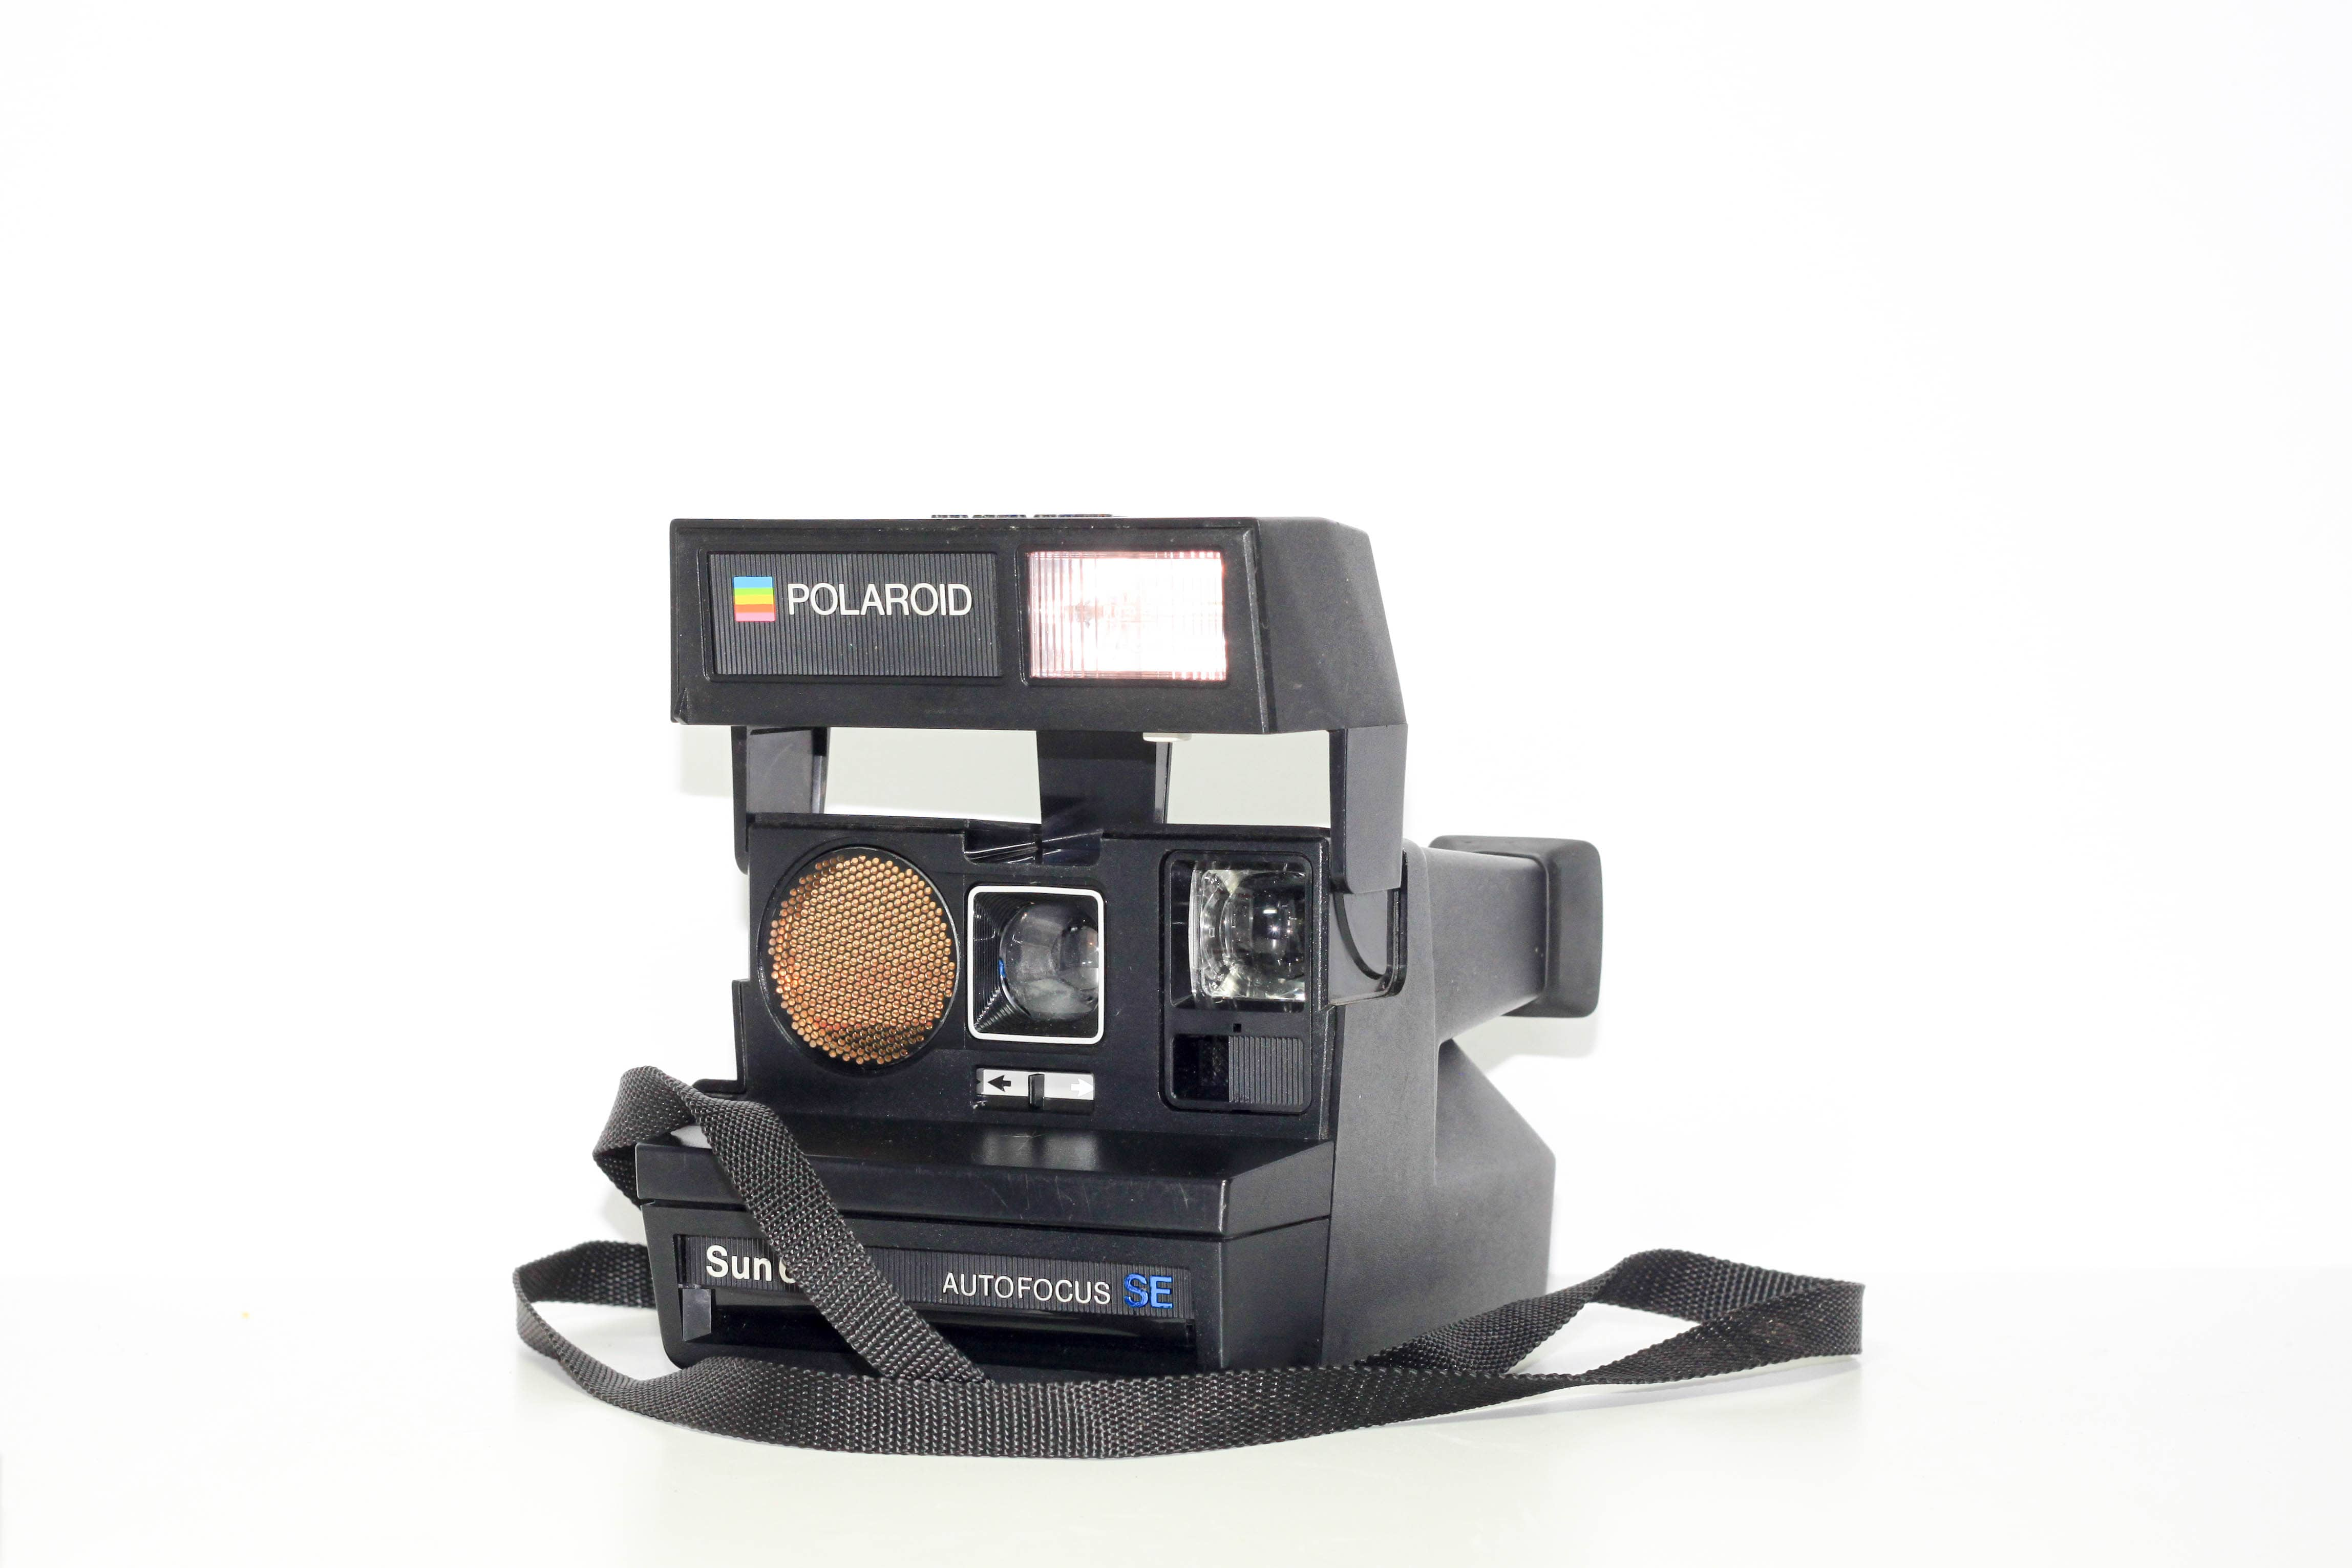 Polaroid Sun 660 AutoFocus SE - Refurbished